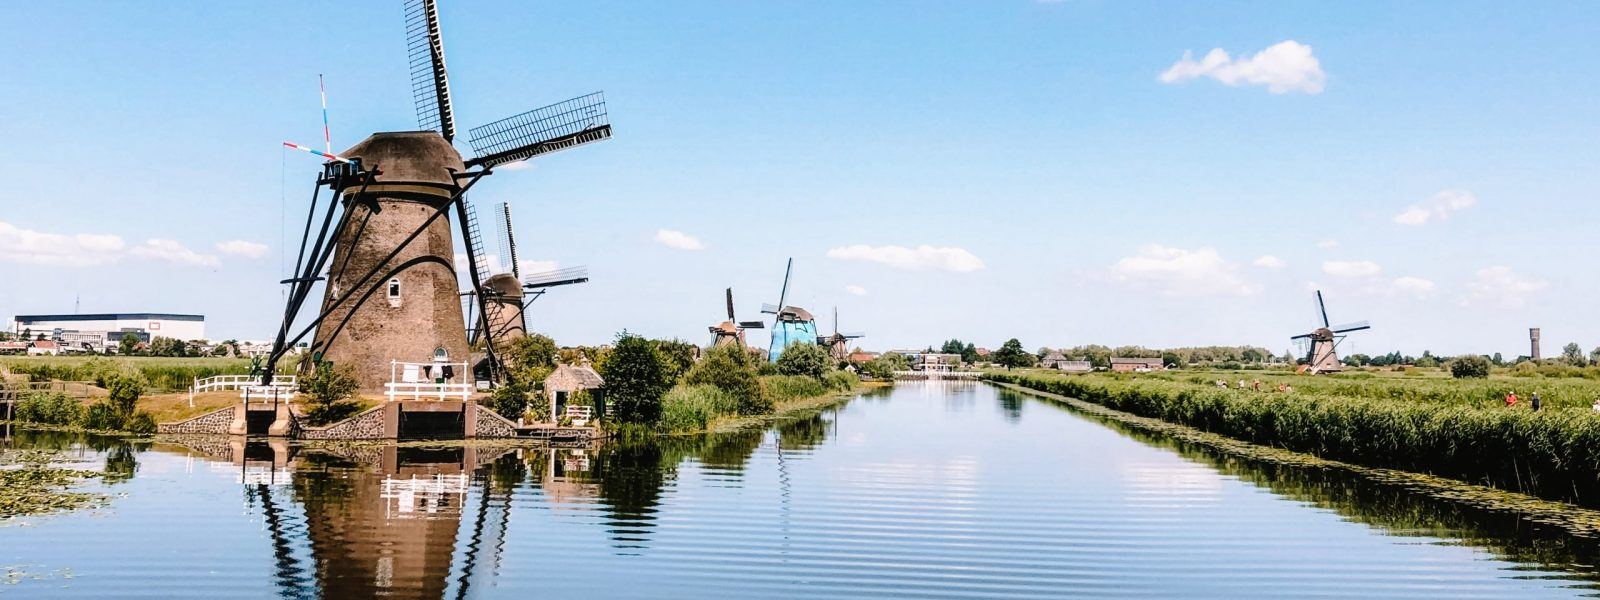 10x must-visits in The Netherlands